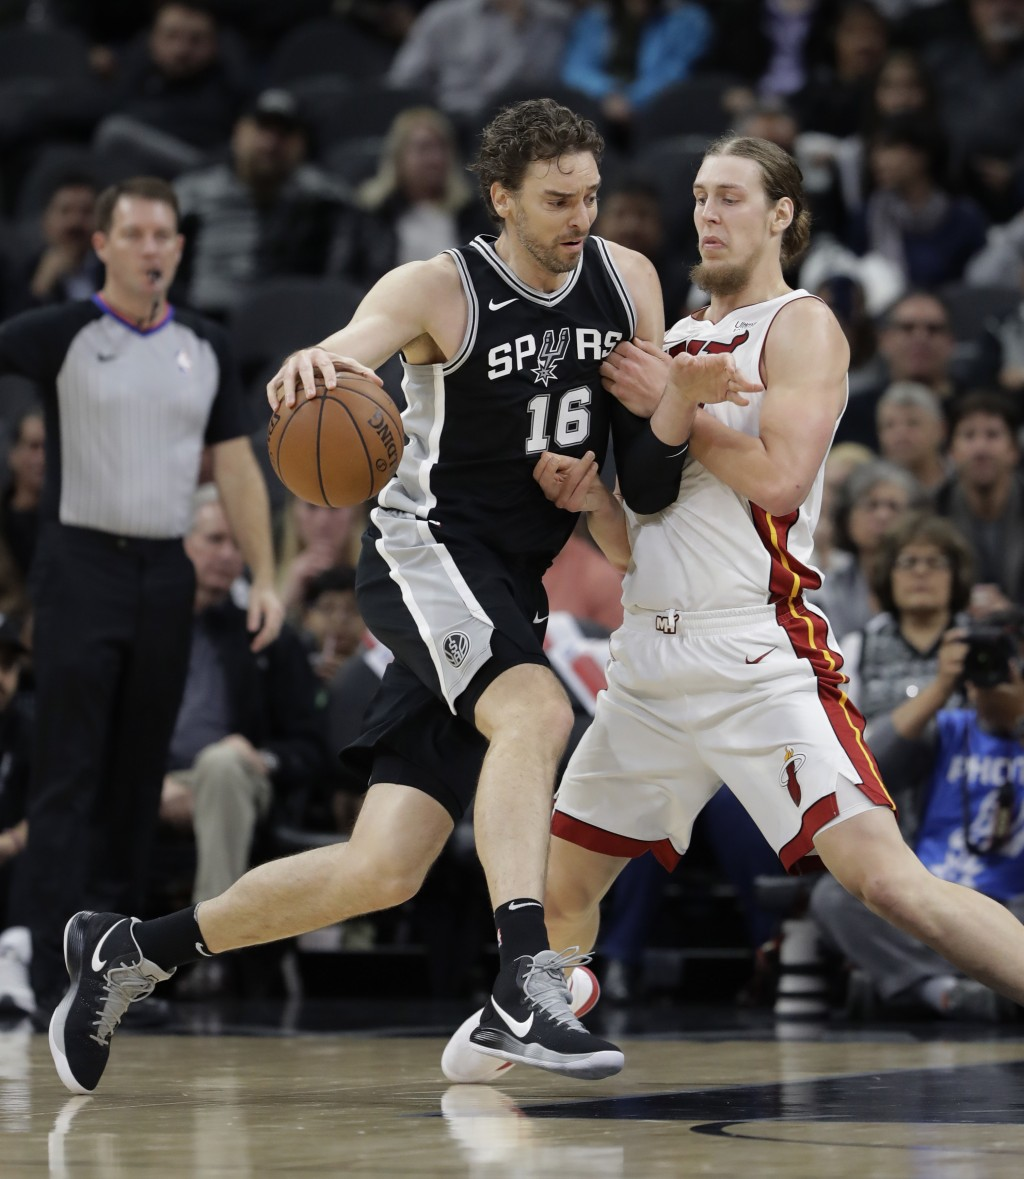 San Antonio Spurs center Pau Gasol (16) drives around Miami Heat center Kelly Olynyk during the first half of an NBA basketball game Wednesday, Dec. 6